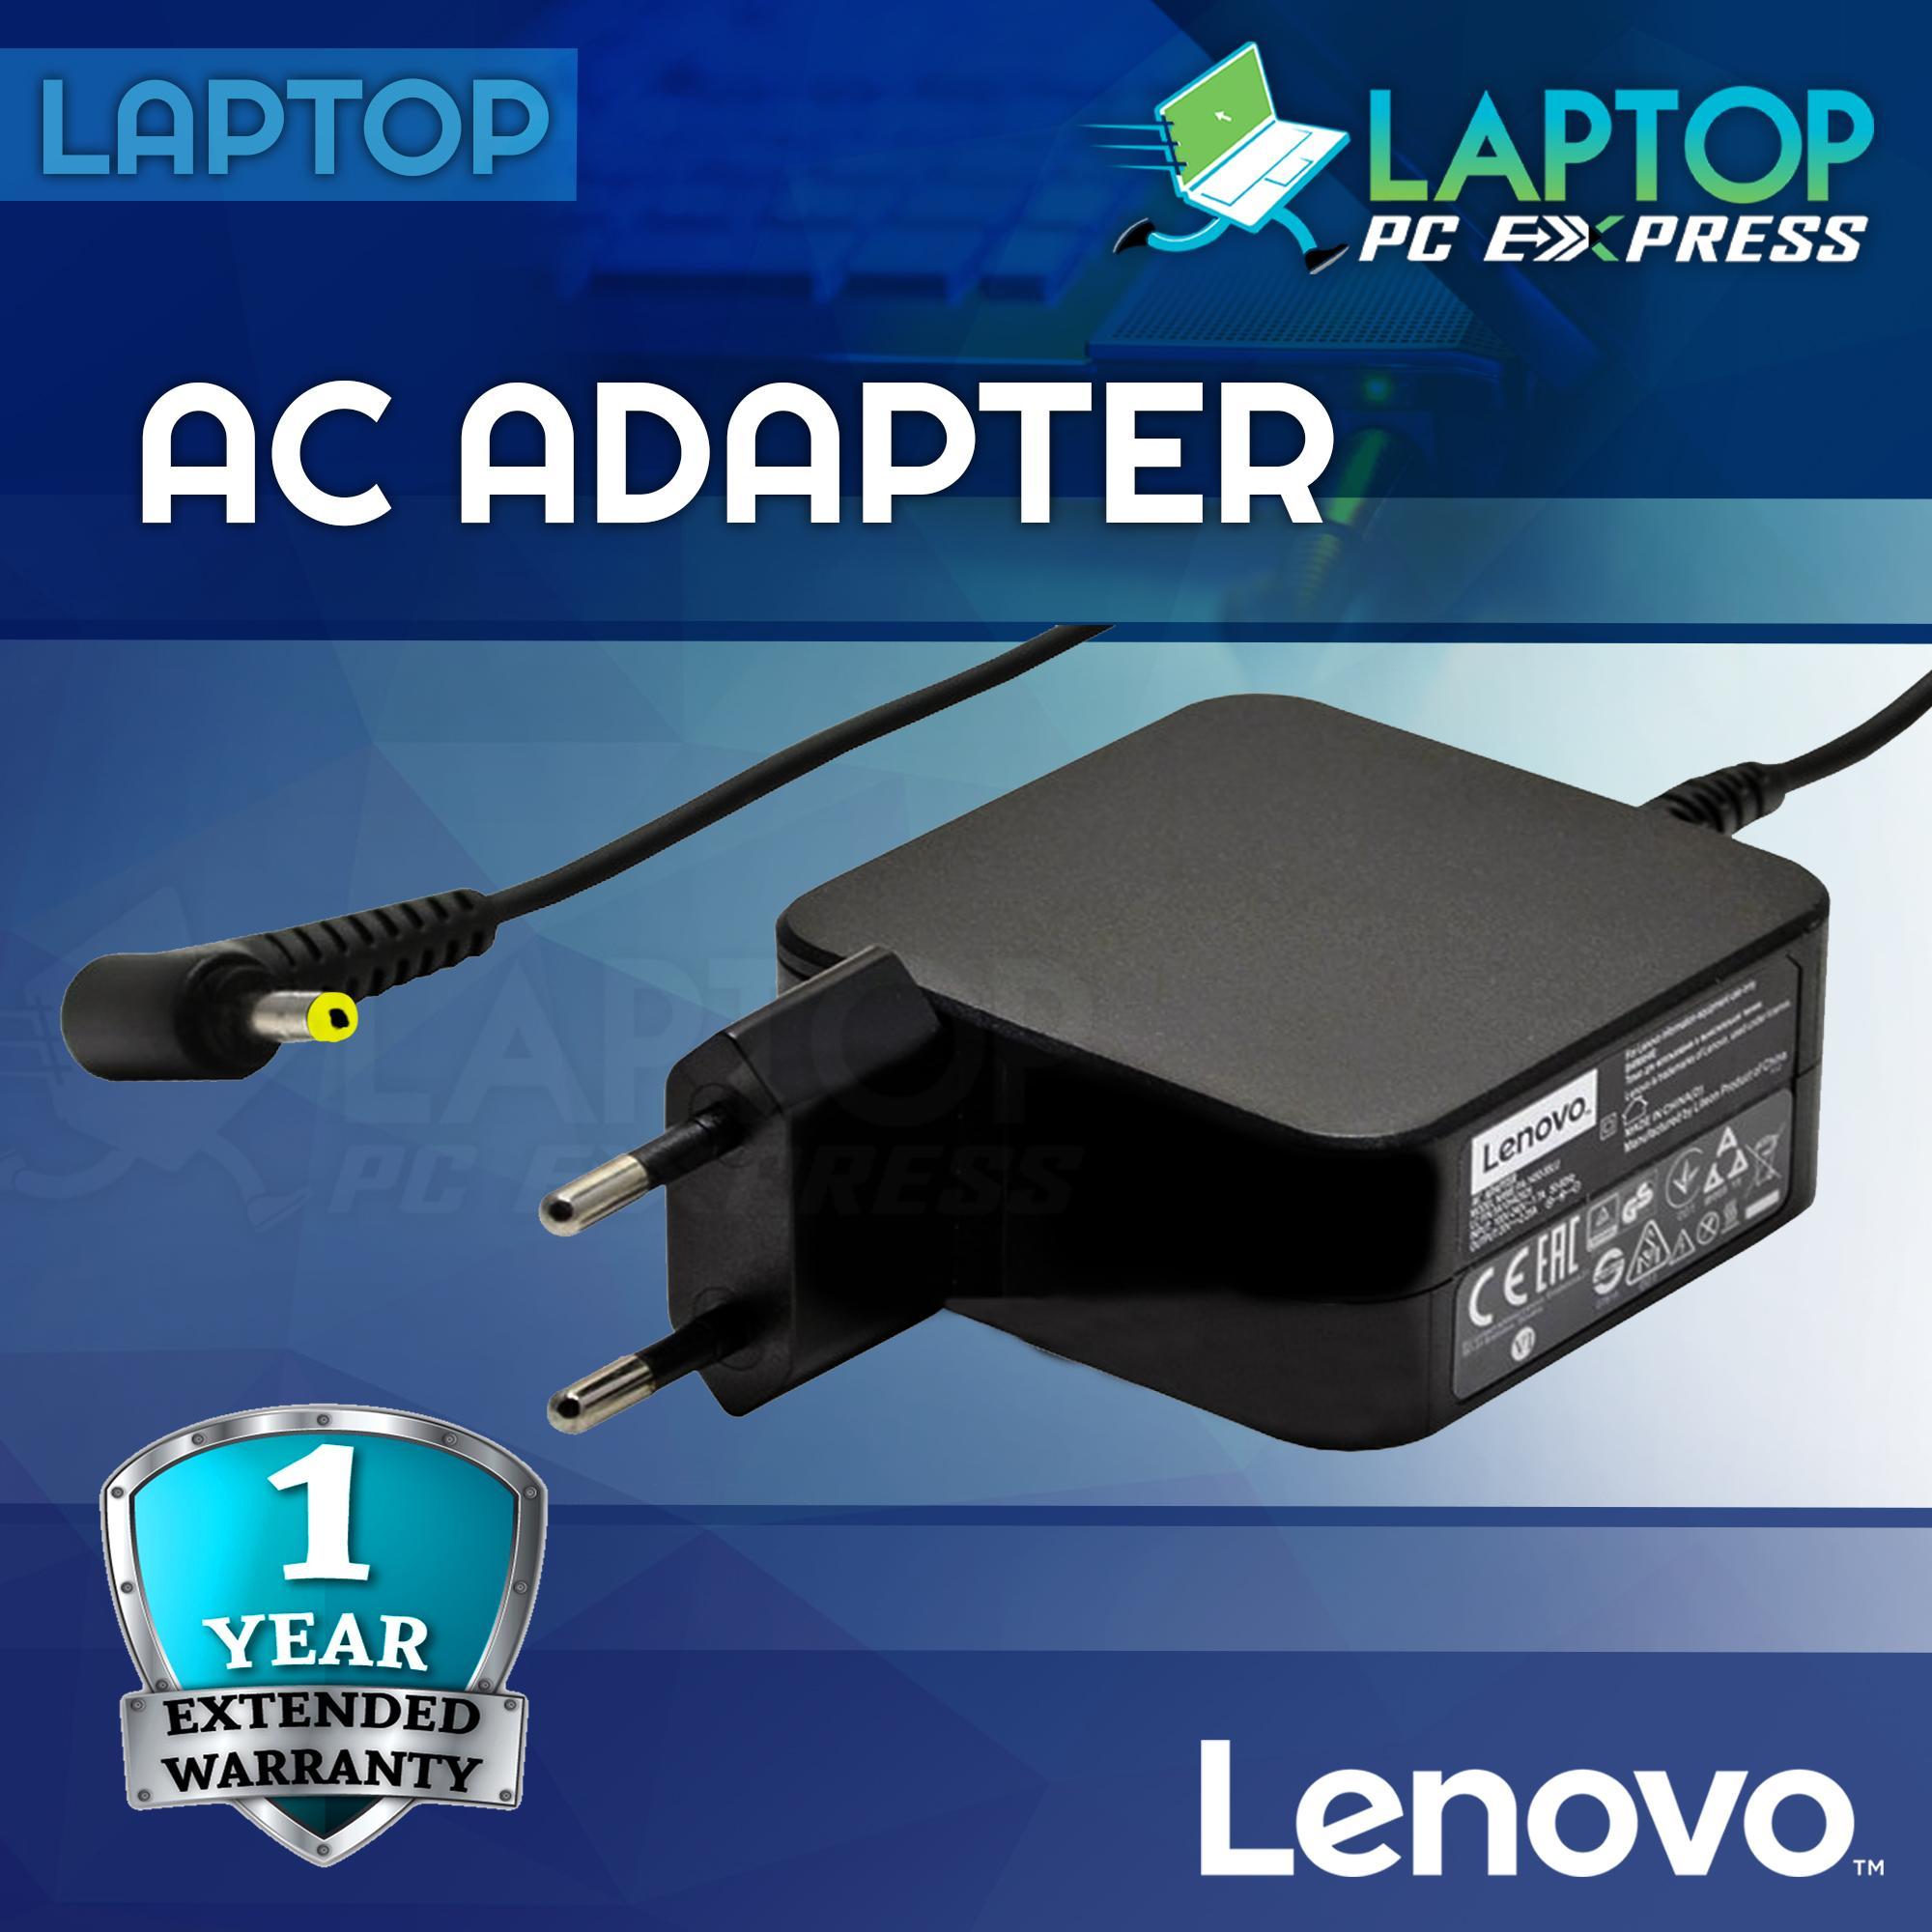 Sell Lenovo Ideapad U110 Cheapest Best Quality Ph Store Lcd Led 140 Inc G40 30 70 80 Php 1050